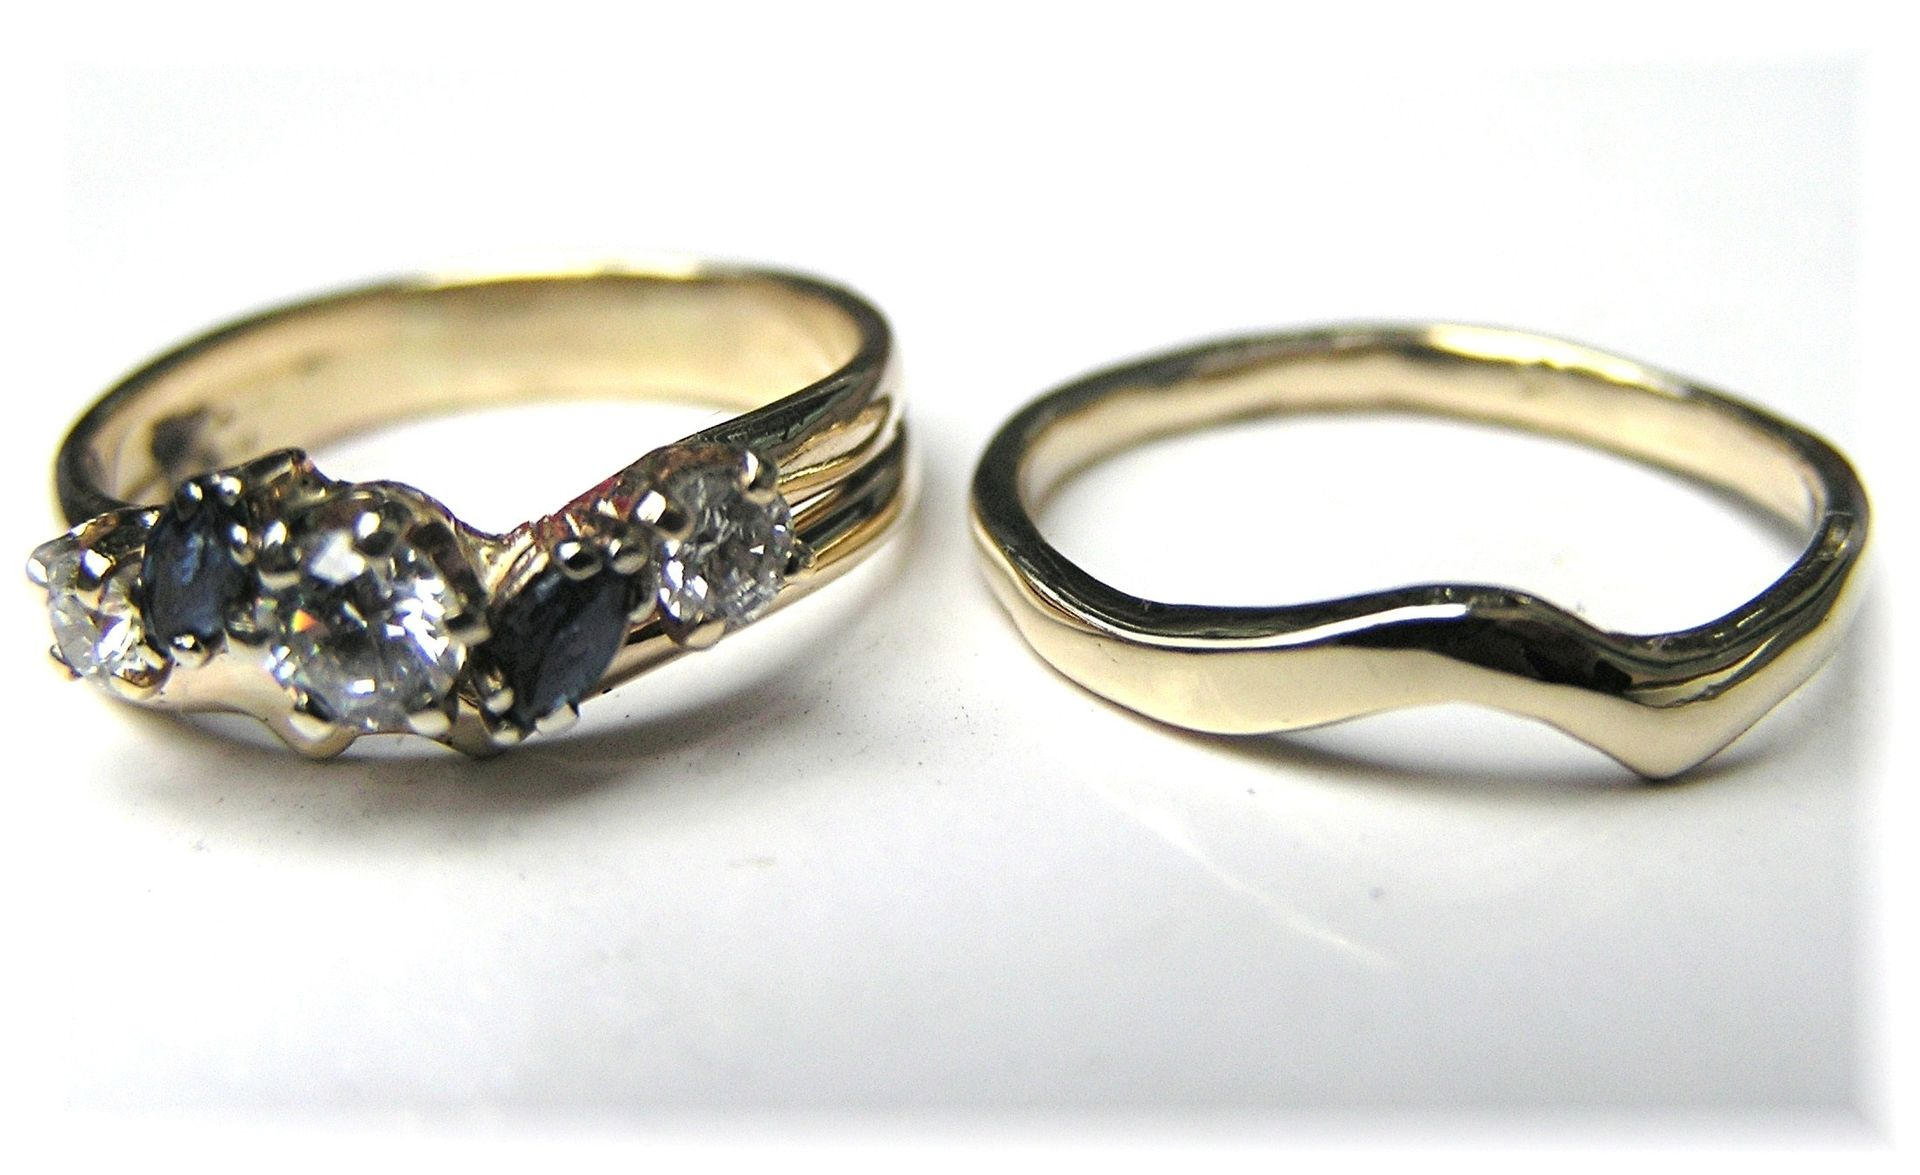 wedding ring attachment view designs rings new of model displaying best trusty bands band gallery fresh decor full gold